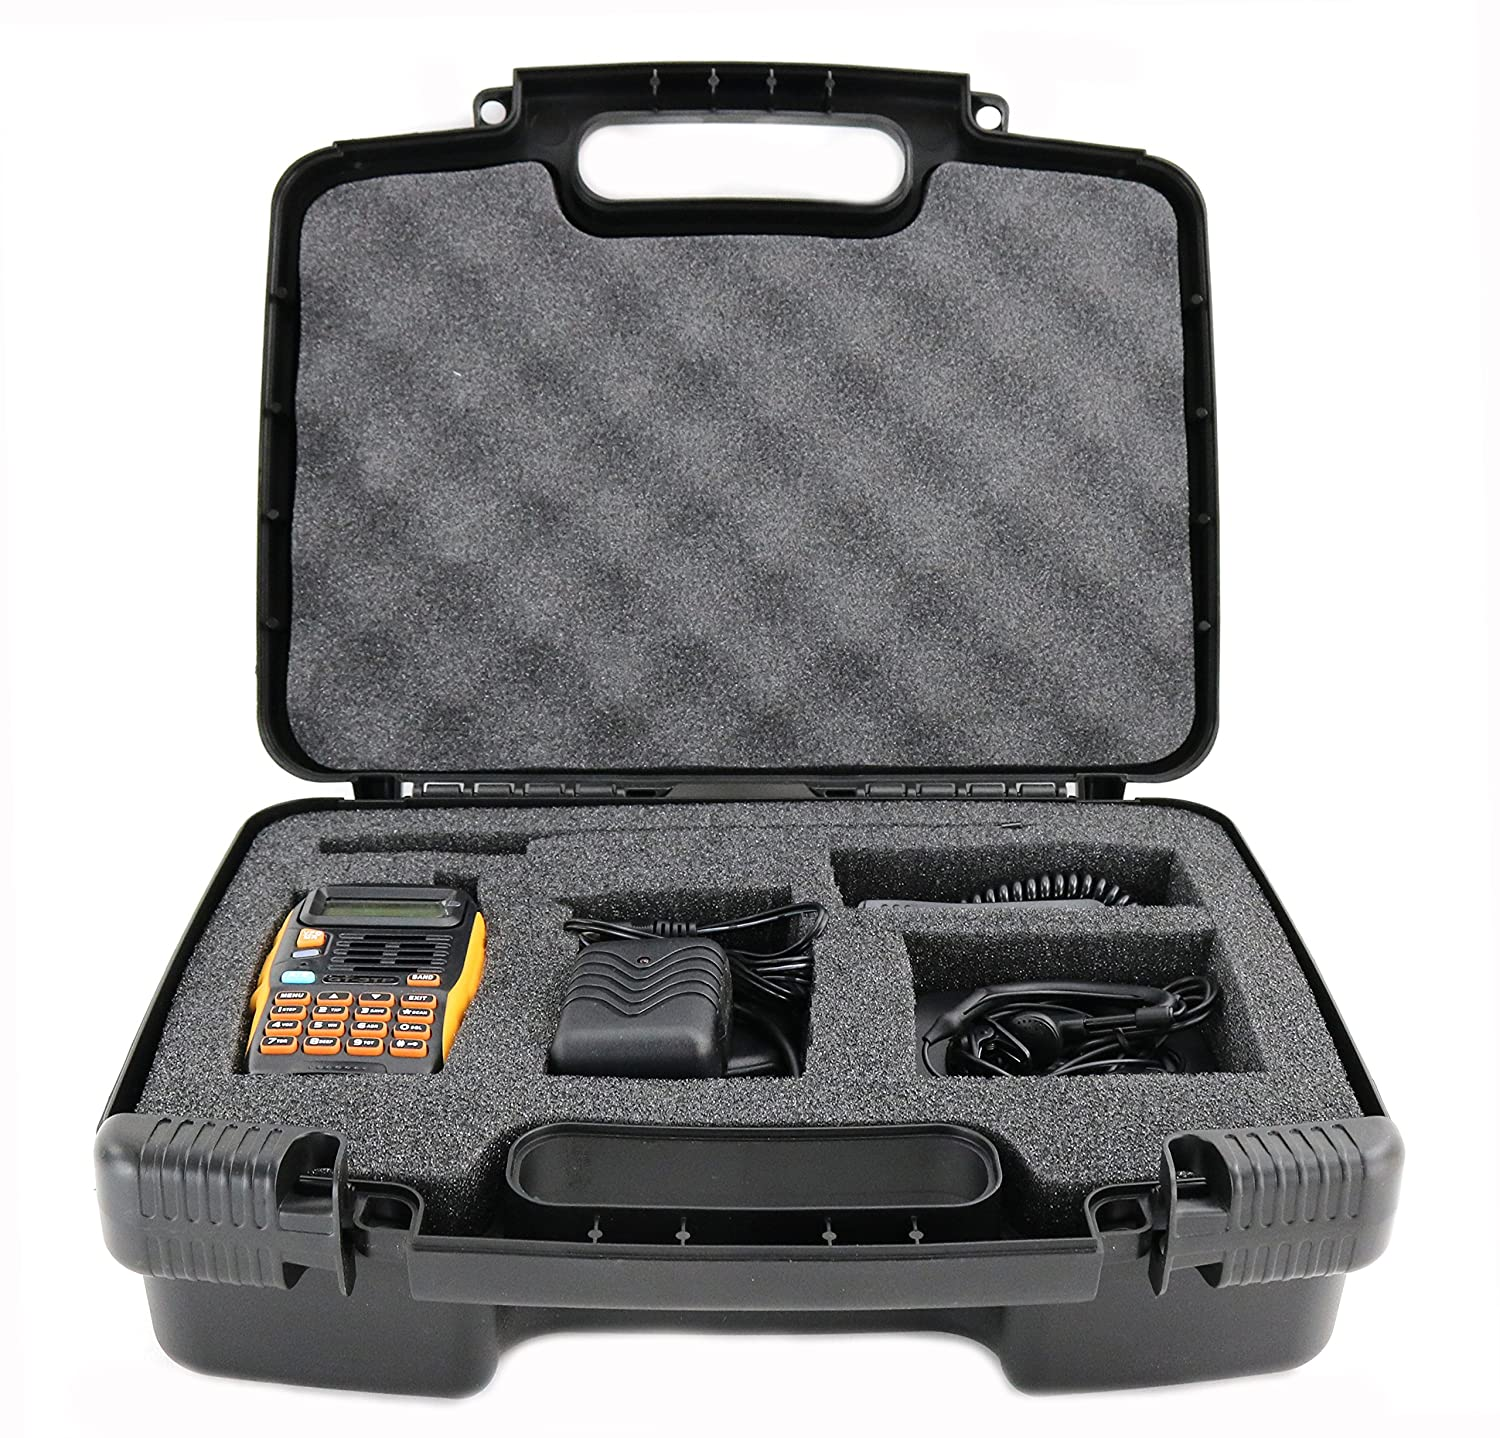 Life Made Better Storage Organizer - Compatible with Baofeng Radio GT-3TP Mark-III Two-Way Radio Transceiver - Durable Carrying Case - Black LMB3